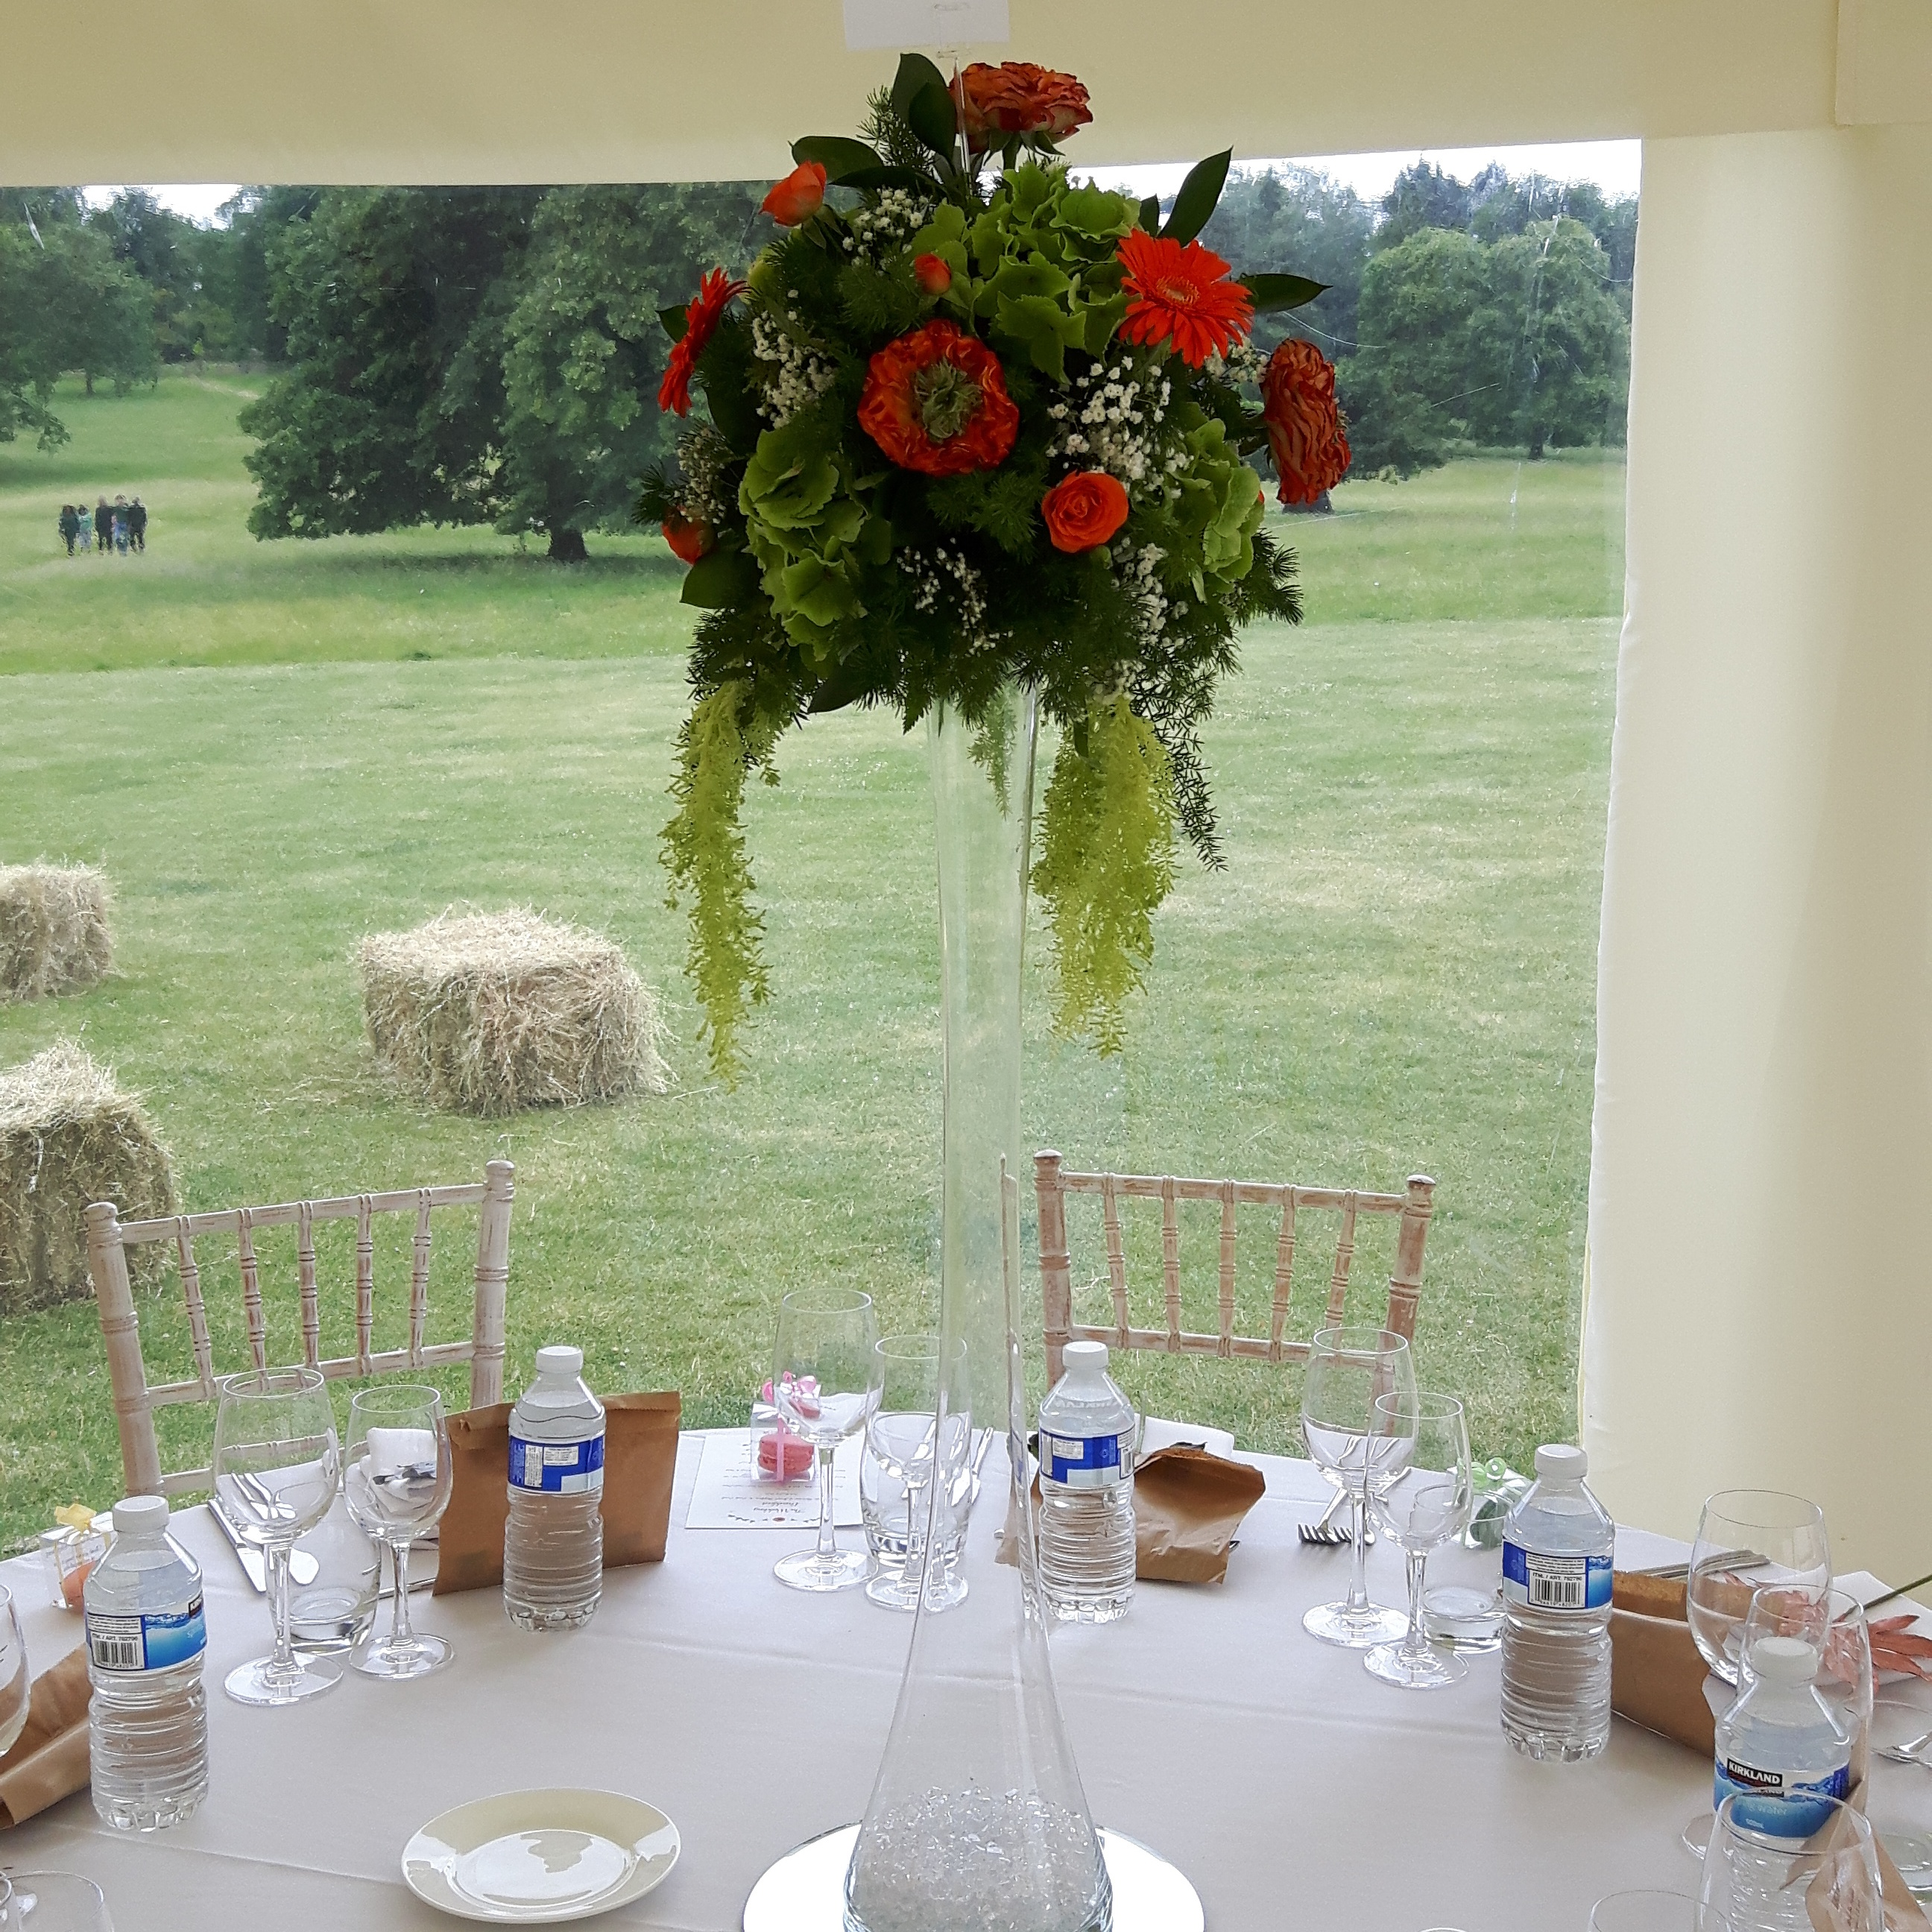 Items For Hire Wedding Special Occasion Martini Vase Candelabra